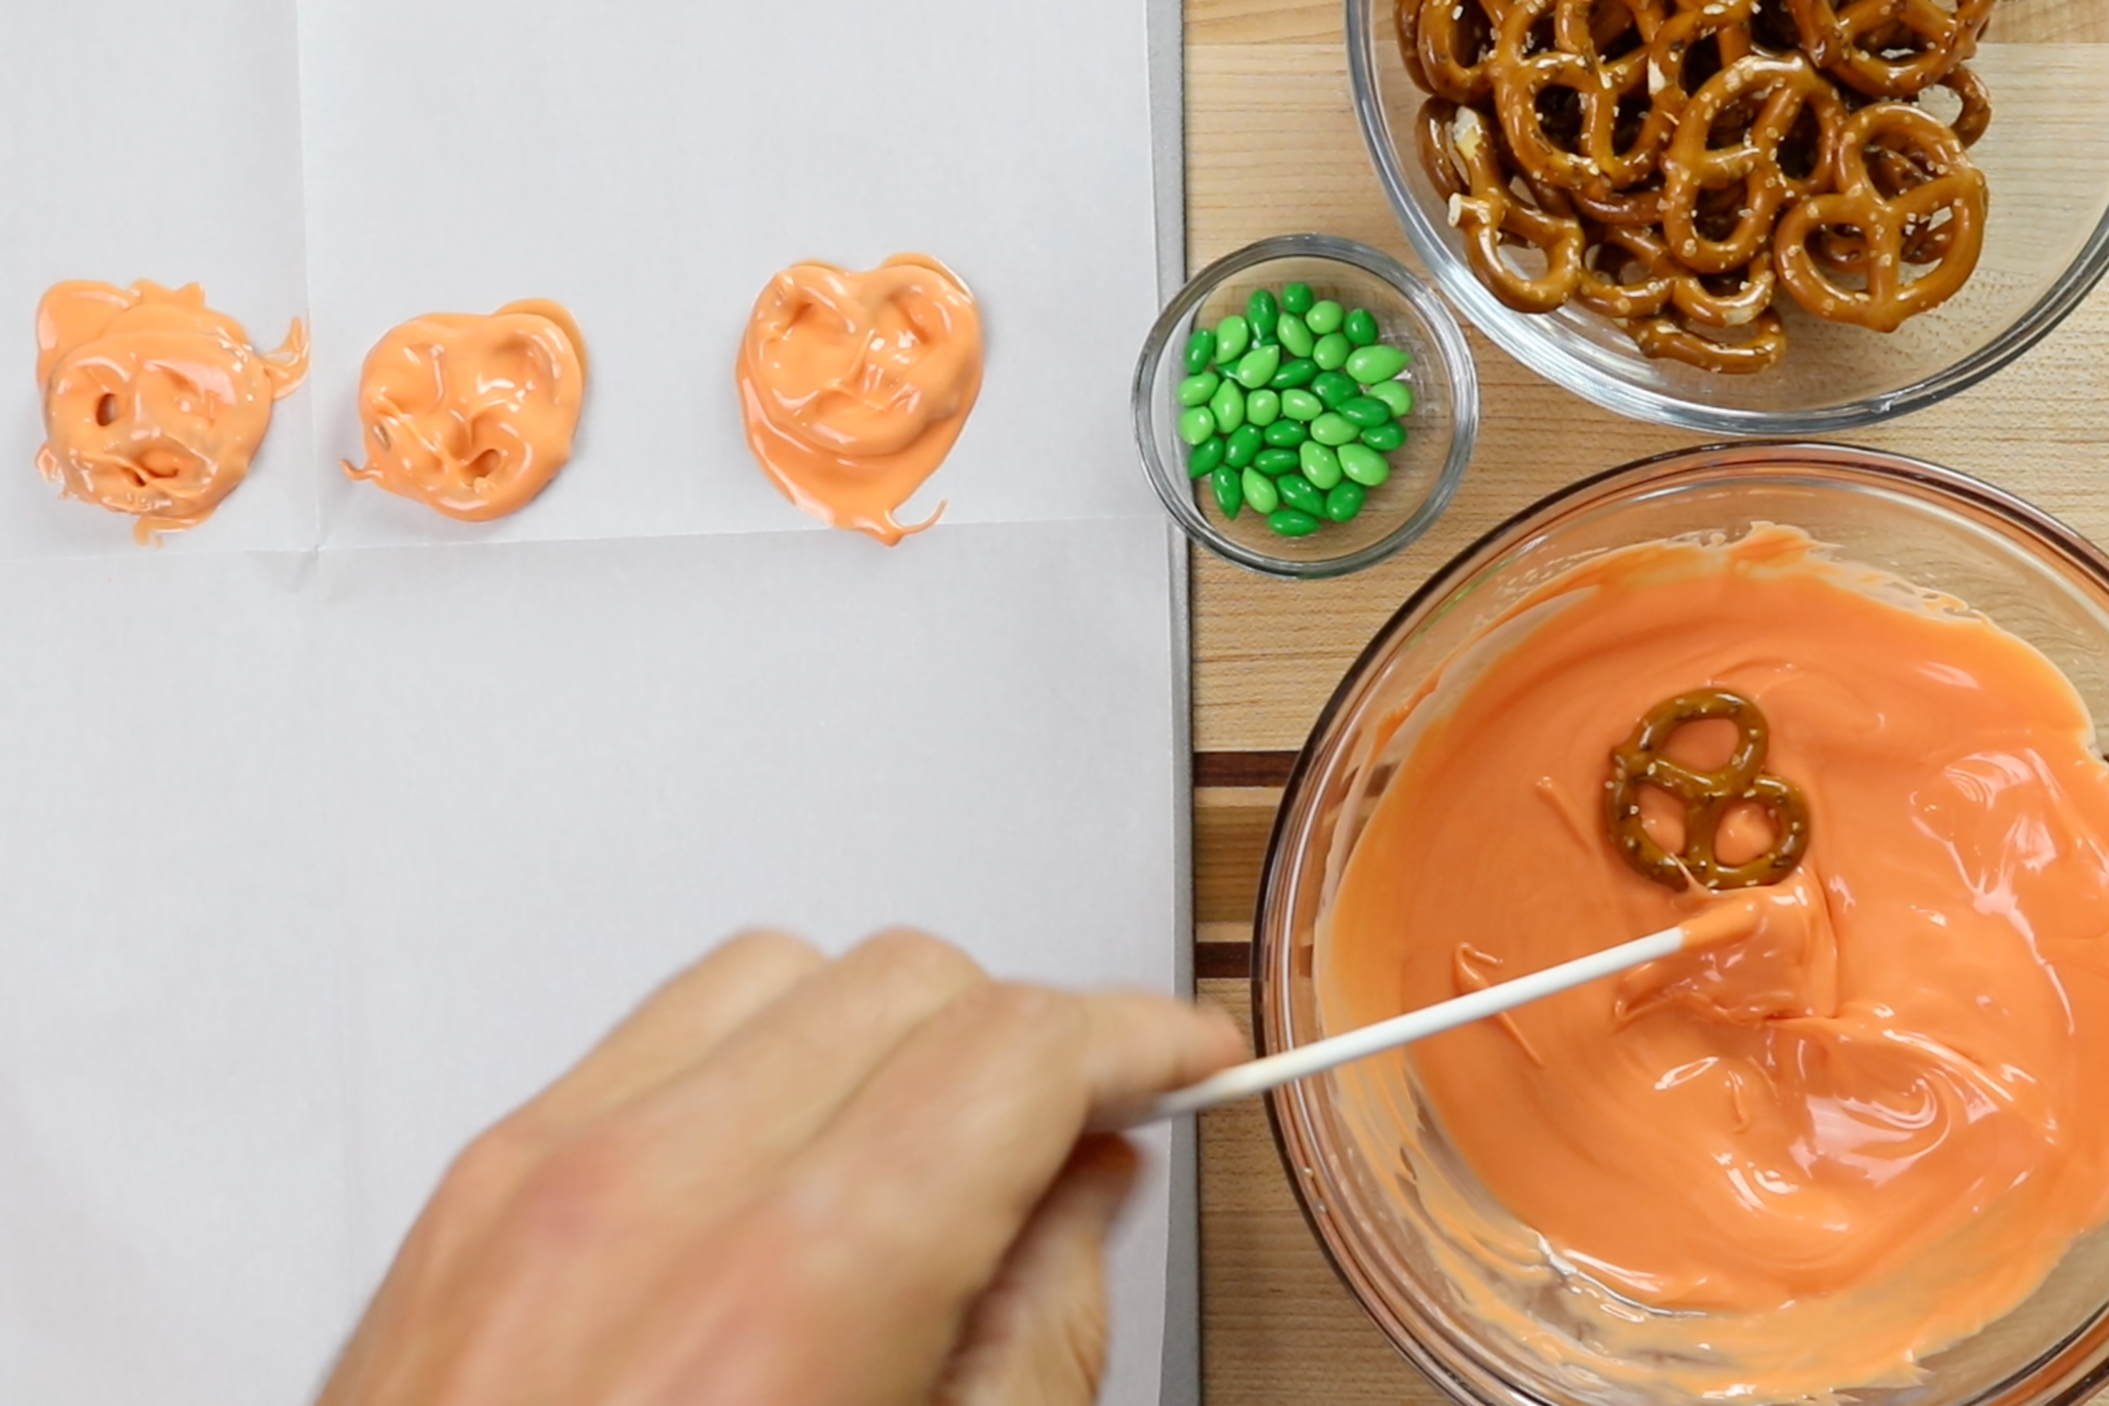 4. Drop the whole pretzel in the coating and submerge it slightly. Use a dowel or fork to pull the pretzel out of the melted mixture. Carefully place it on the prepared baking sheet. -